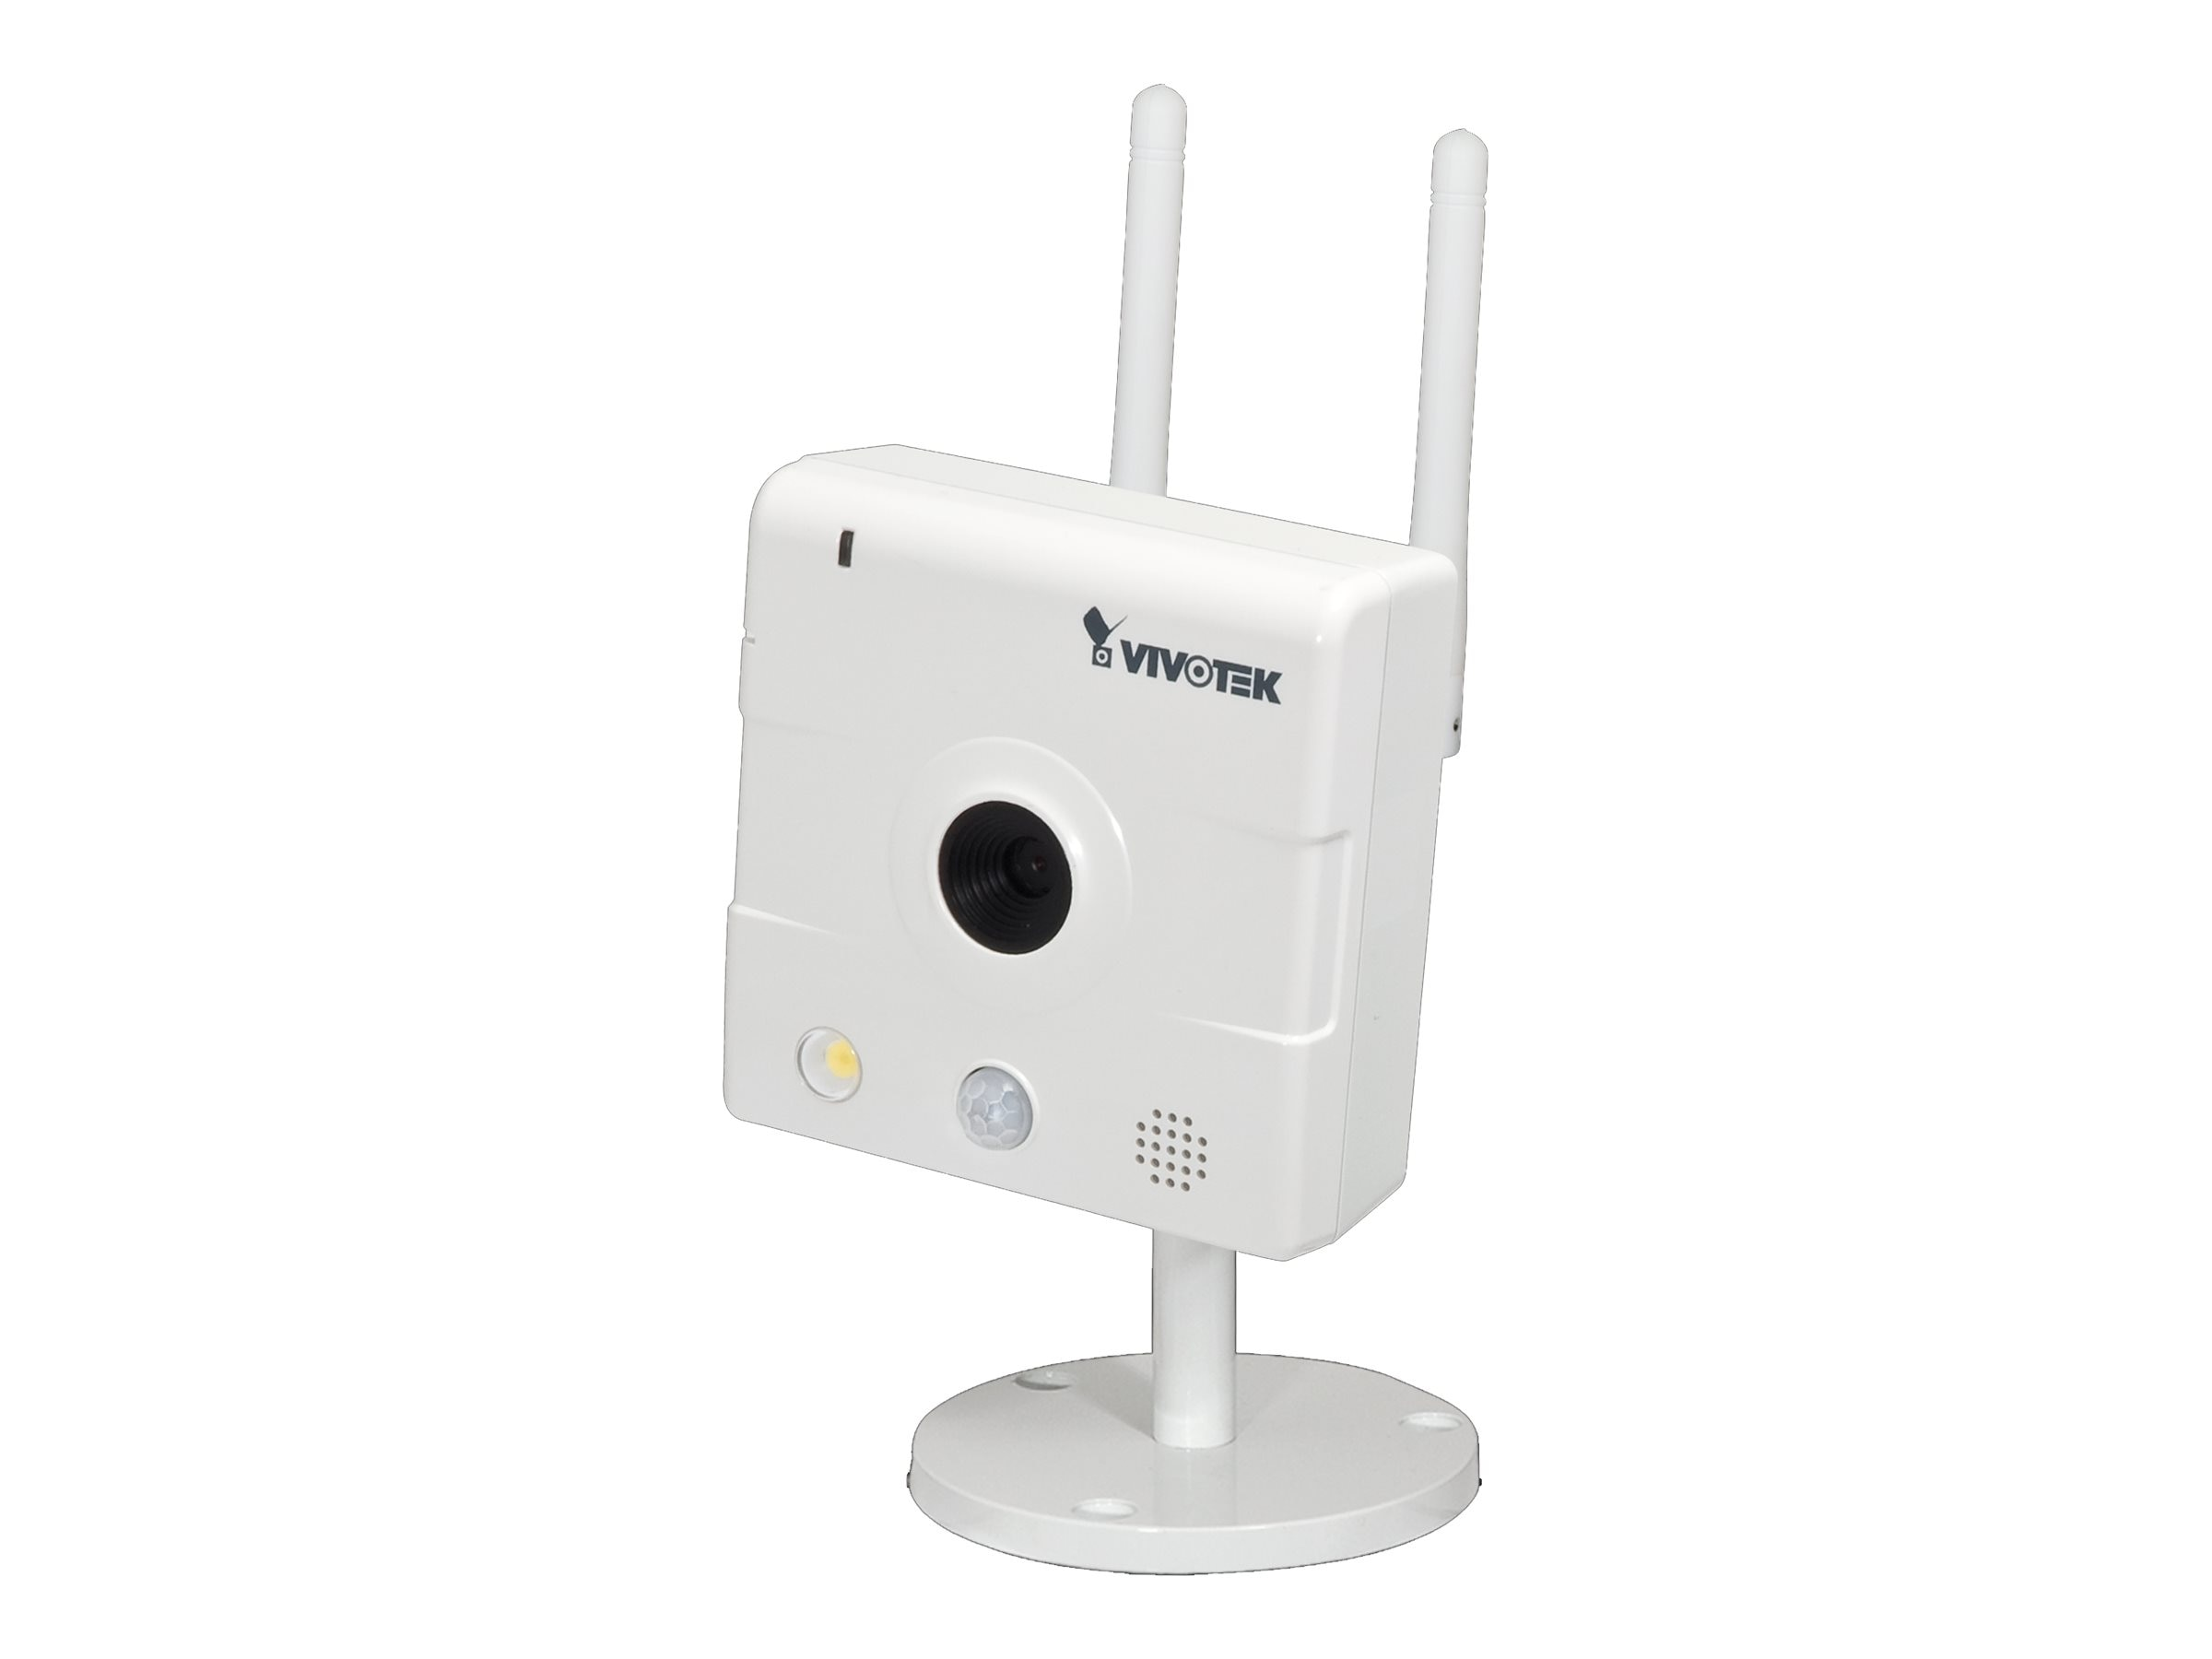 Vivotek IP8133W 1MP Fixed Network Wireless Home Security Camera